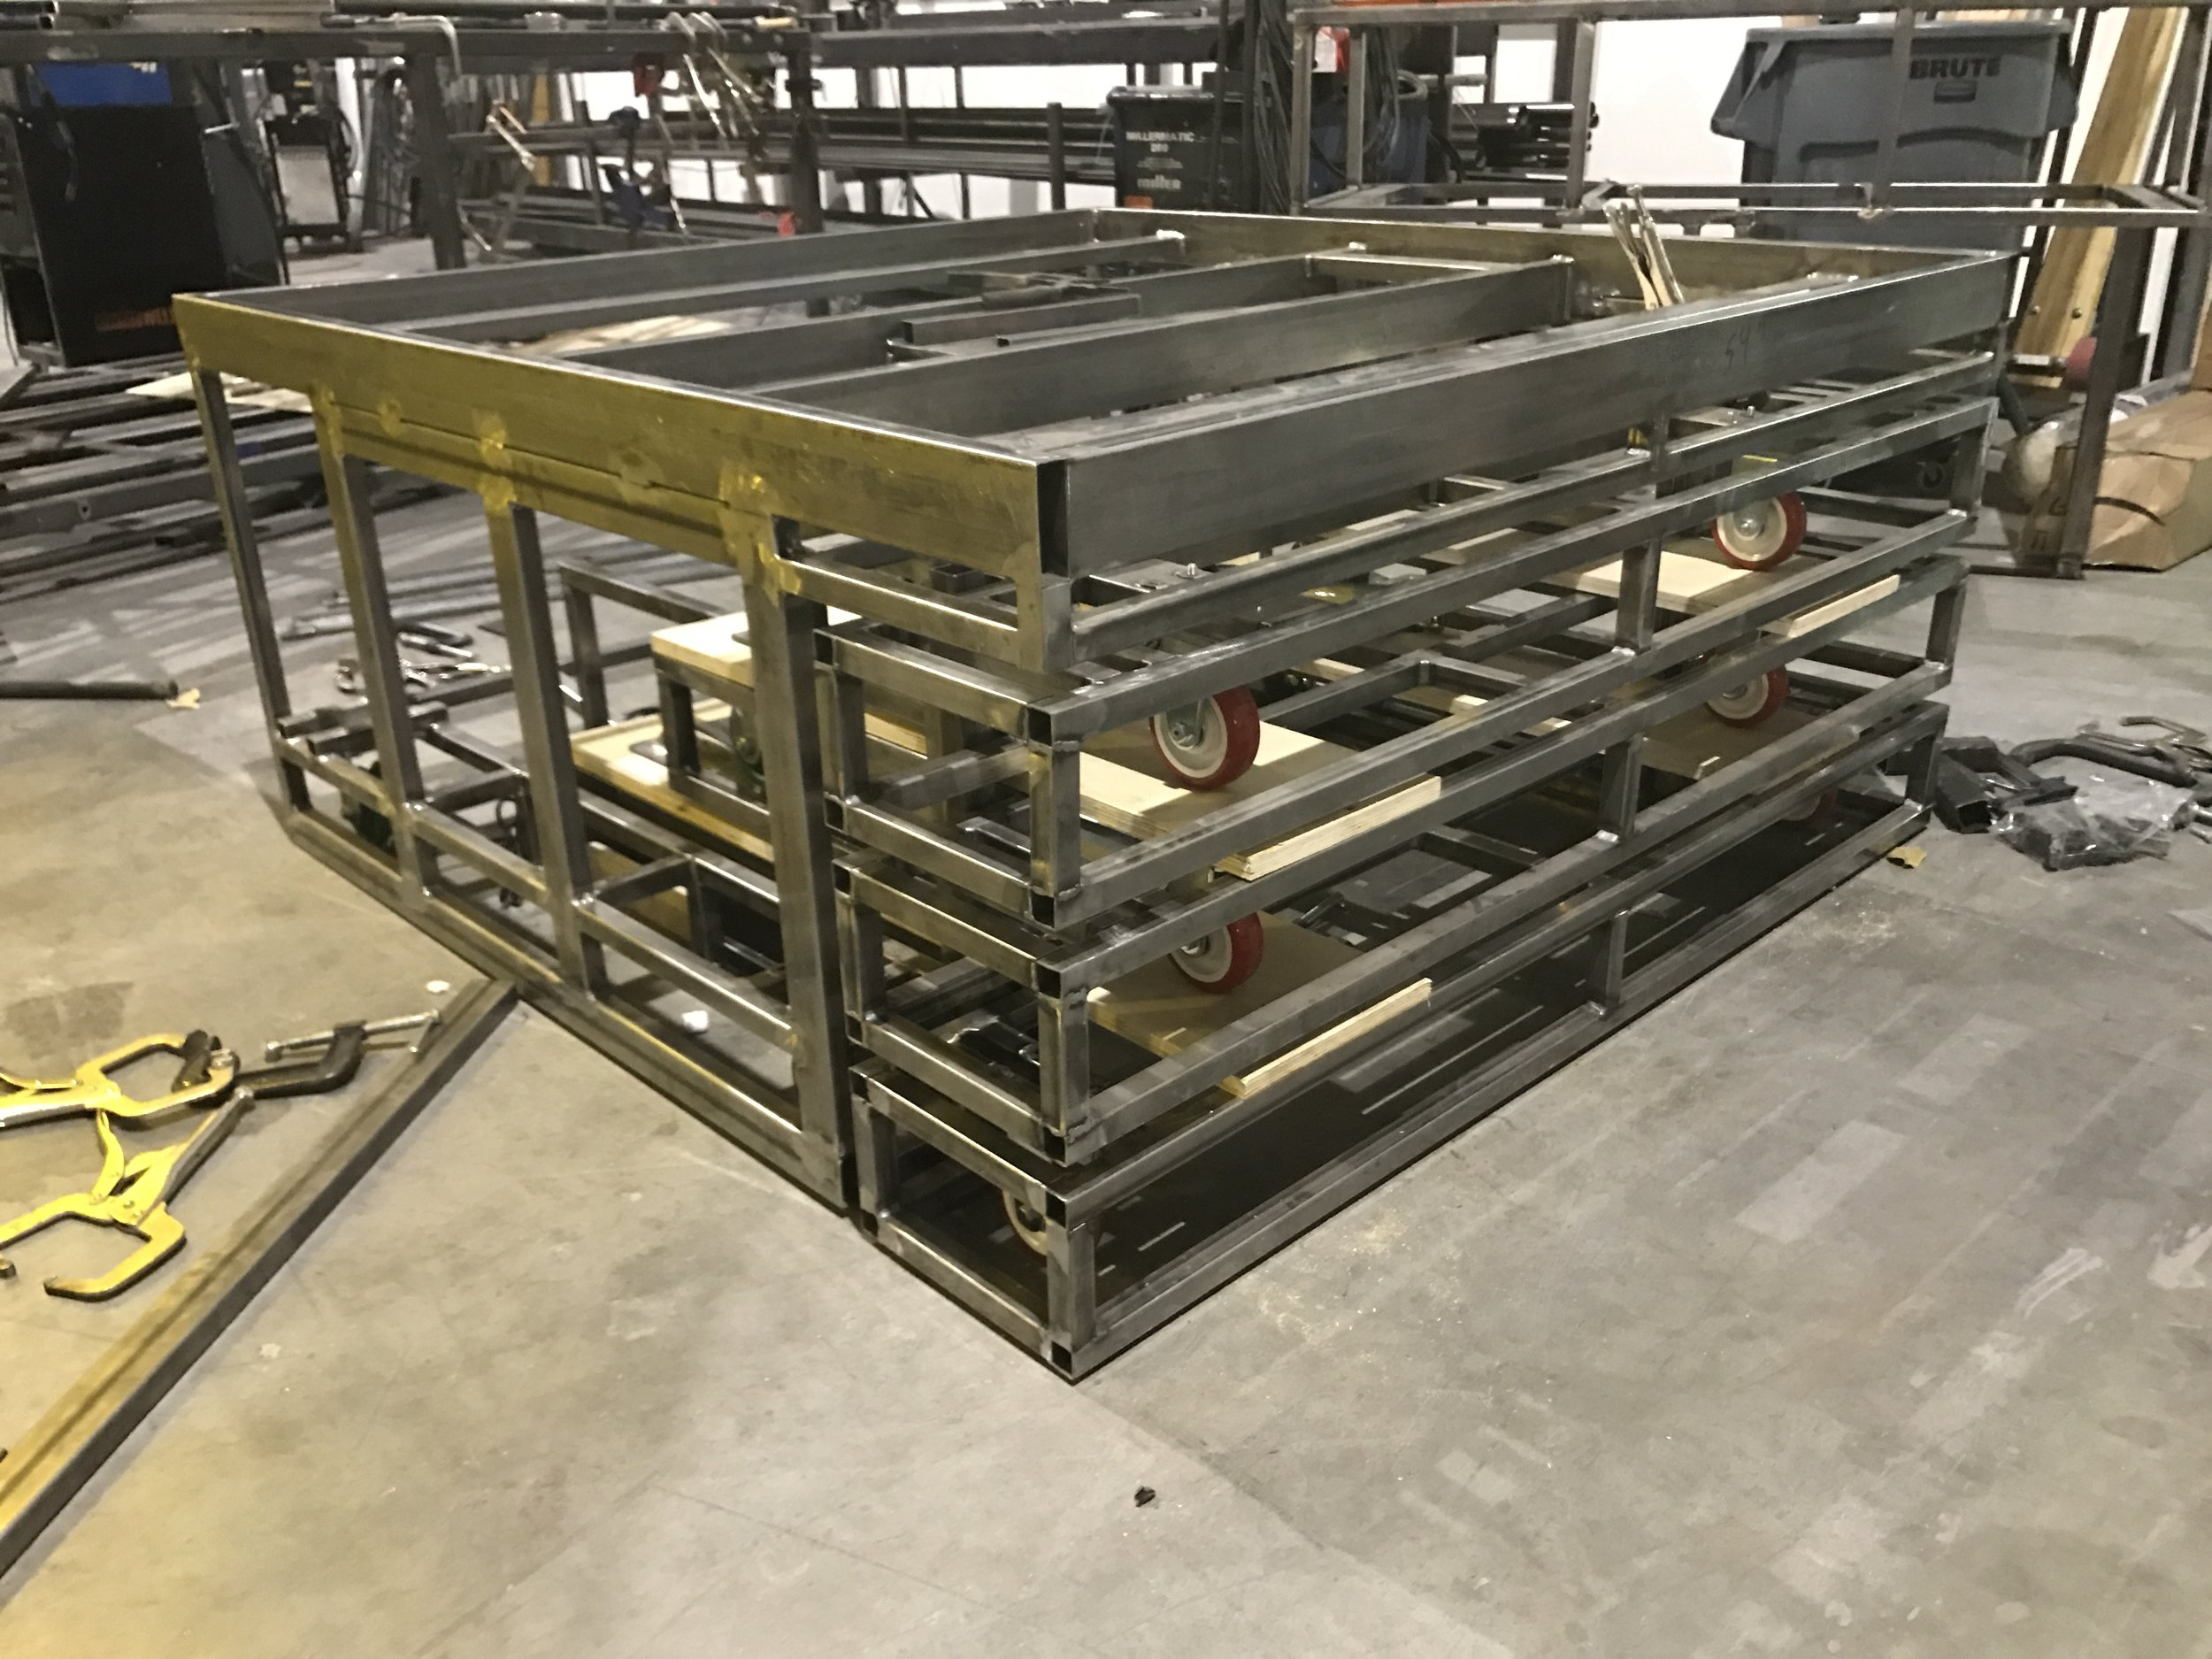 Platform frame assembled and waiting for automation installation